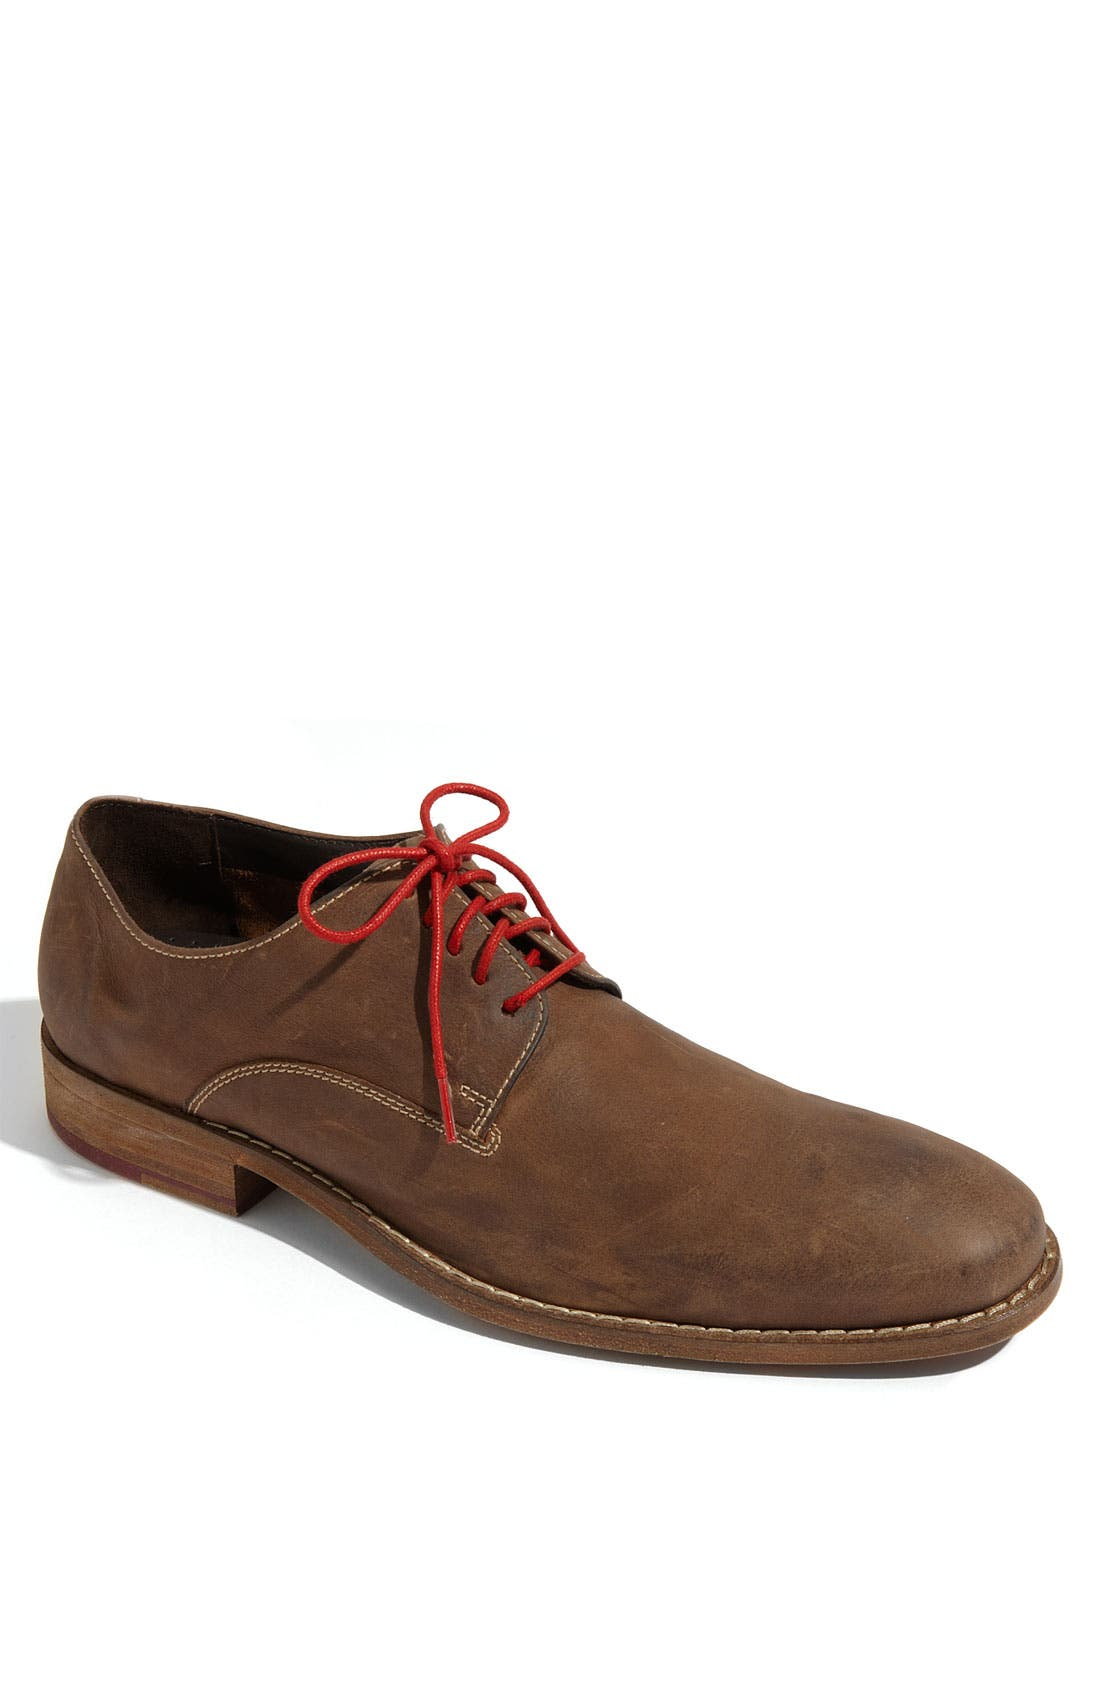 Alternate Image 1 Selected - Cole Haan 'Air Colton' Casual Oxford   (Men)